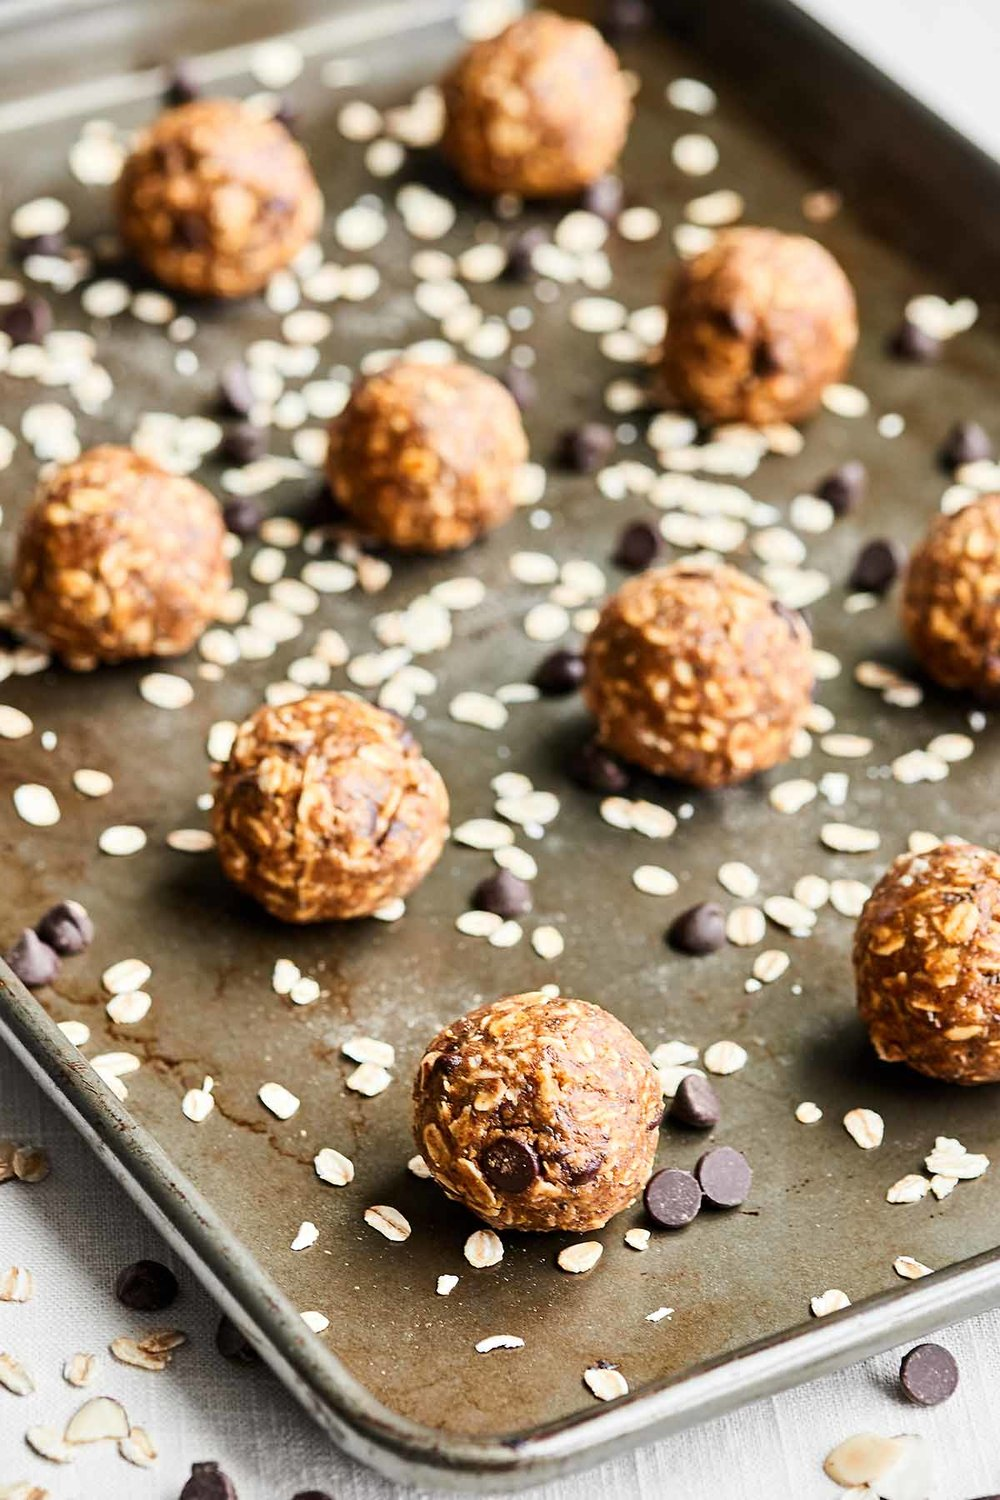 Almond-Butter-Energy-Bites-Show-Me-the-Yummy-7@2x.jpg